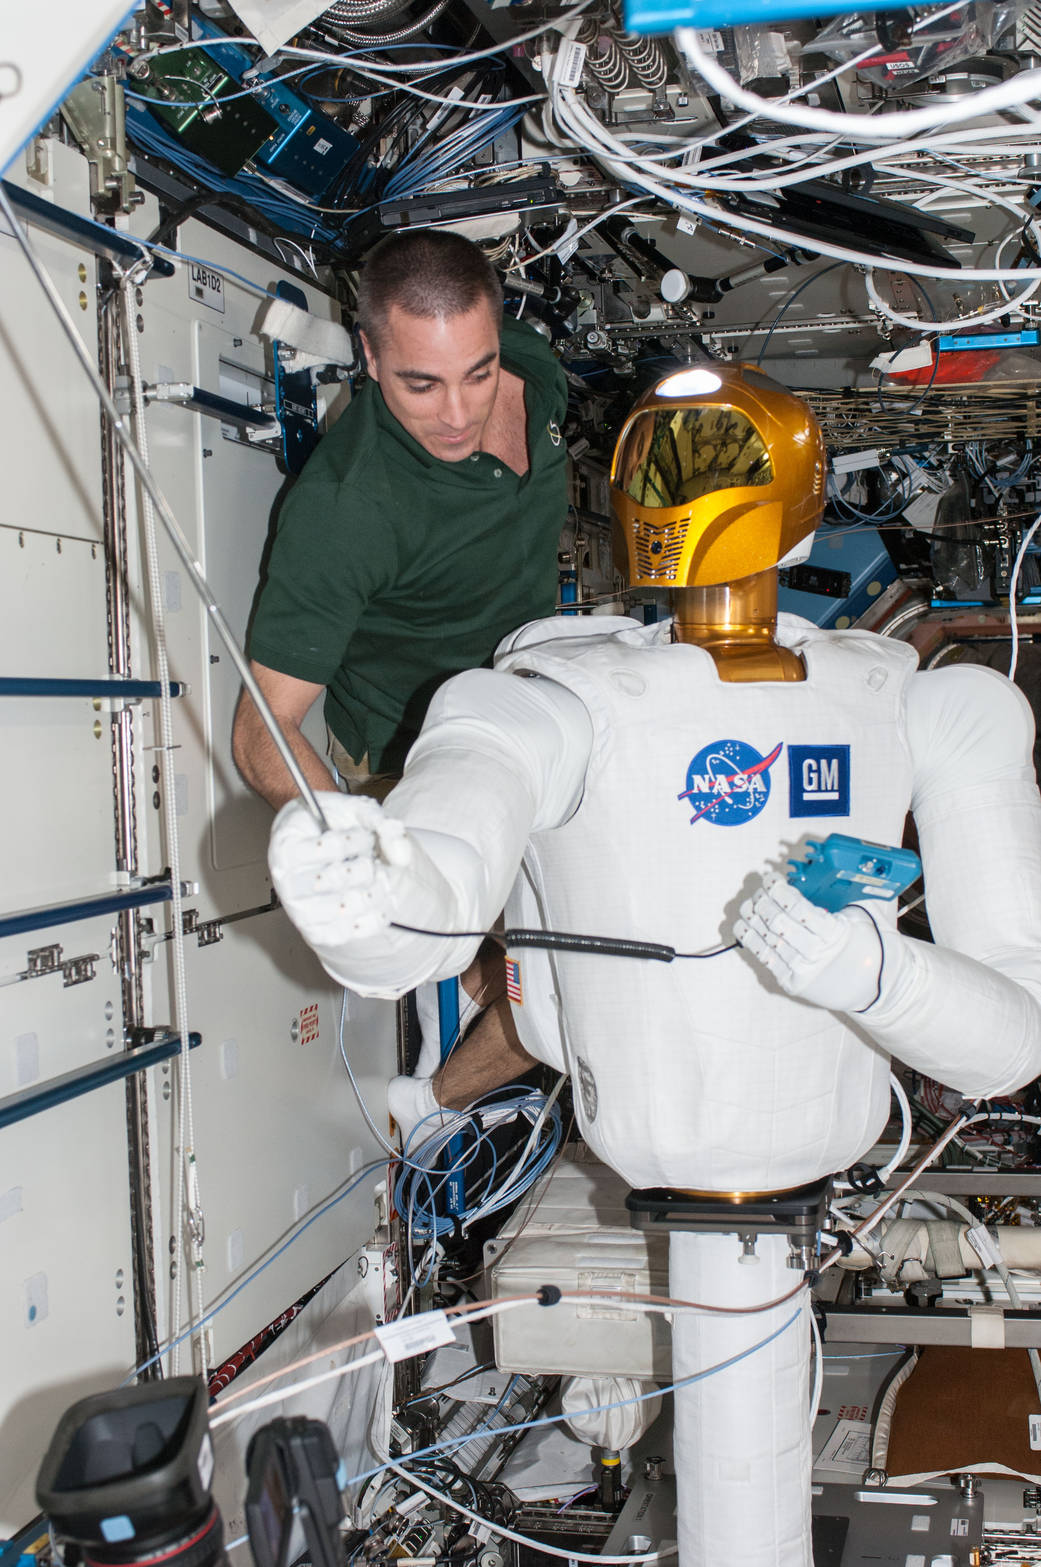 Astronaut Chris Cassidy with the Robonaut 2 aboard the International Space Station. More TARS than HAL, this was the first humanoid robot in space.  NASA  (public domain)